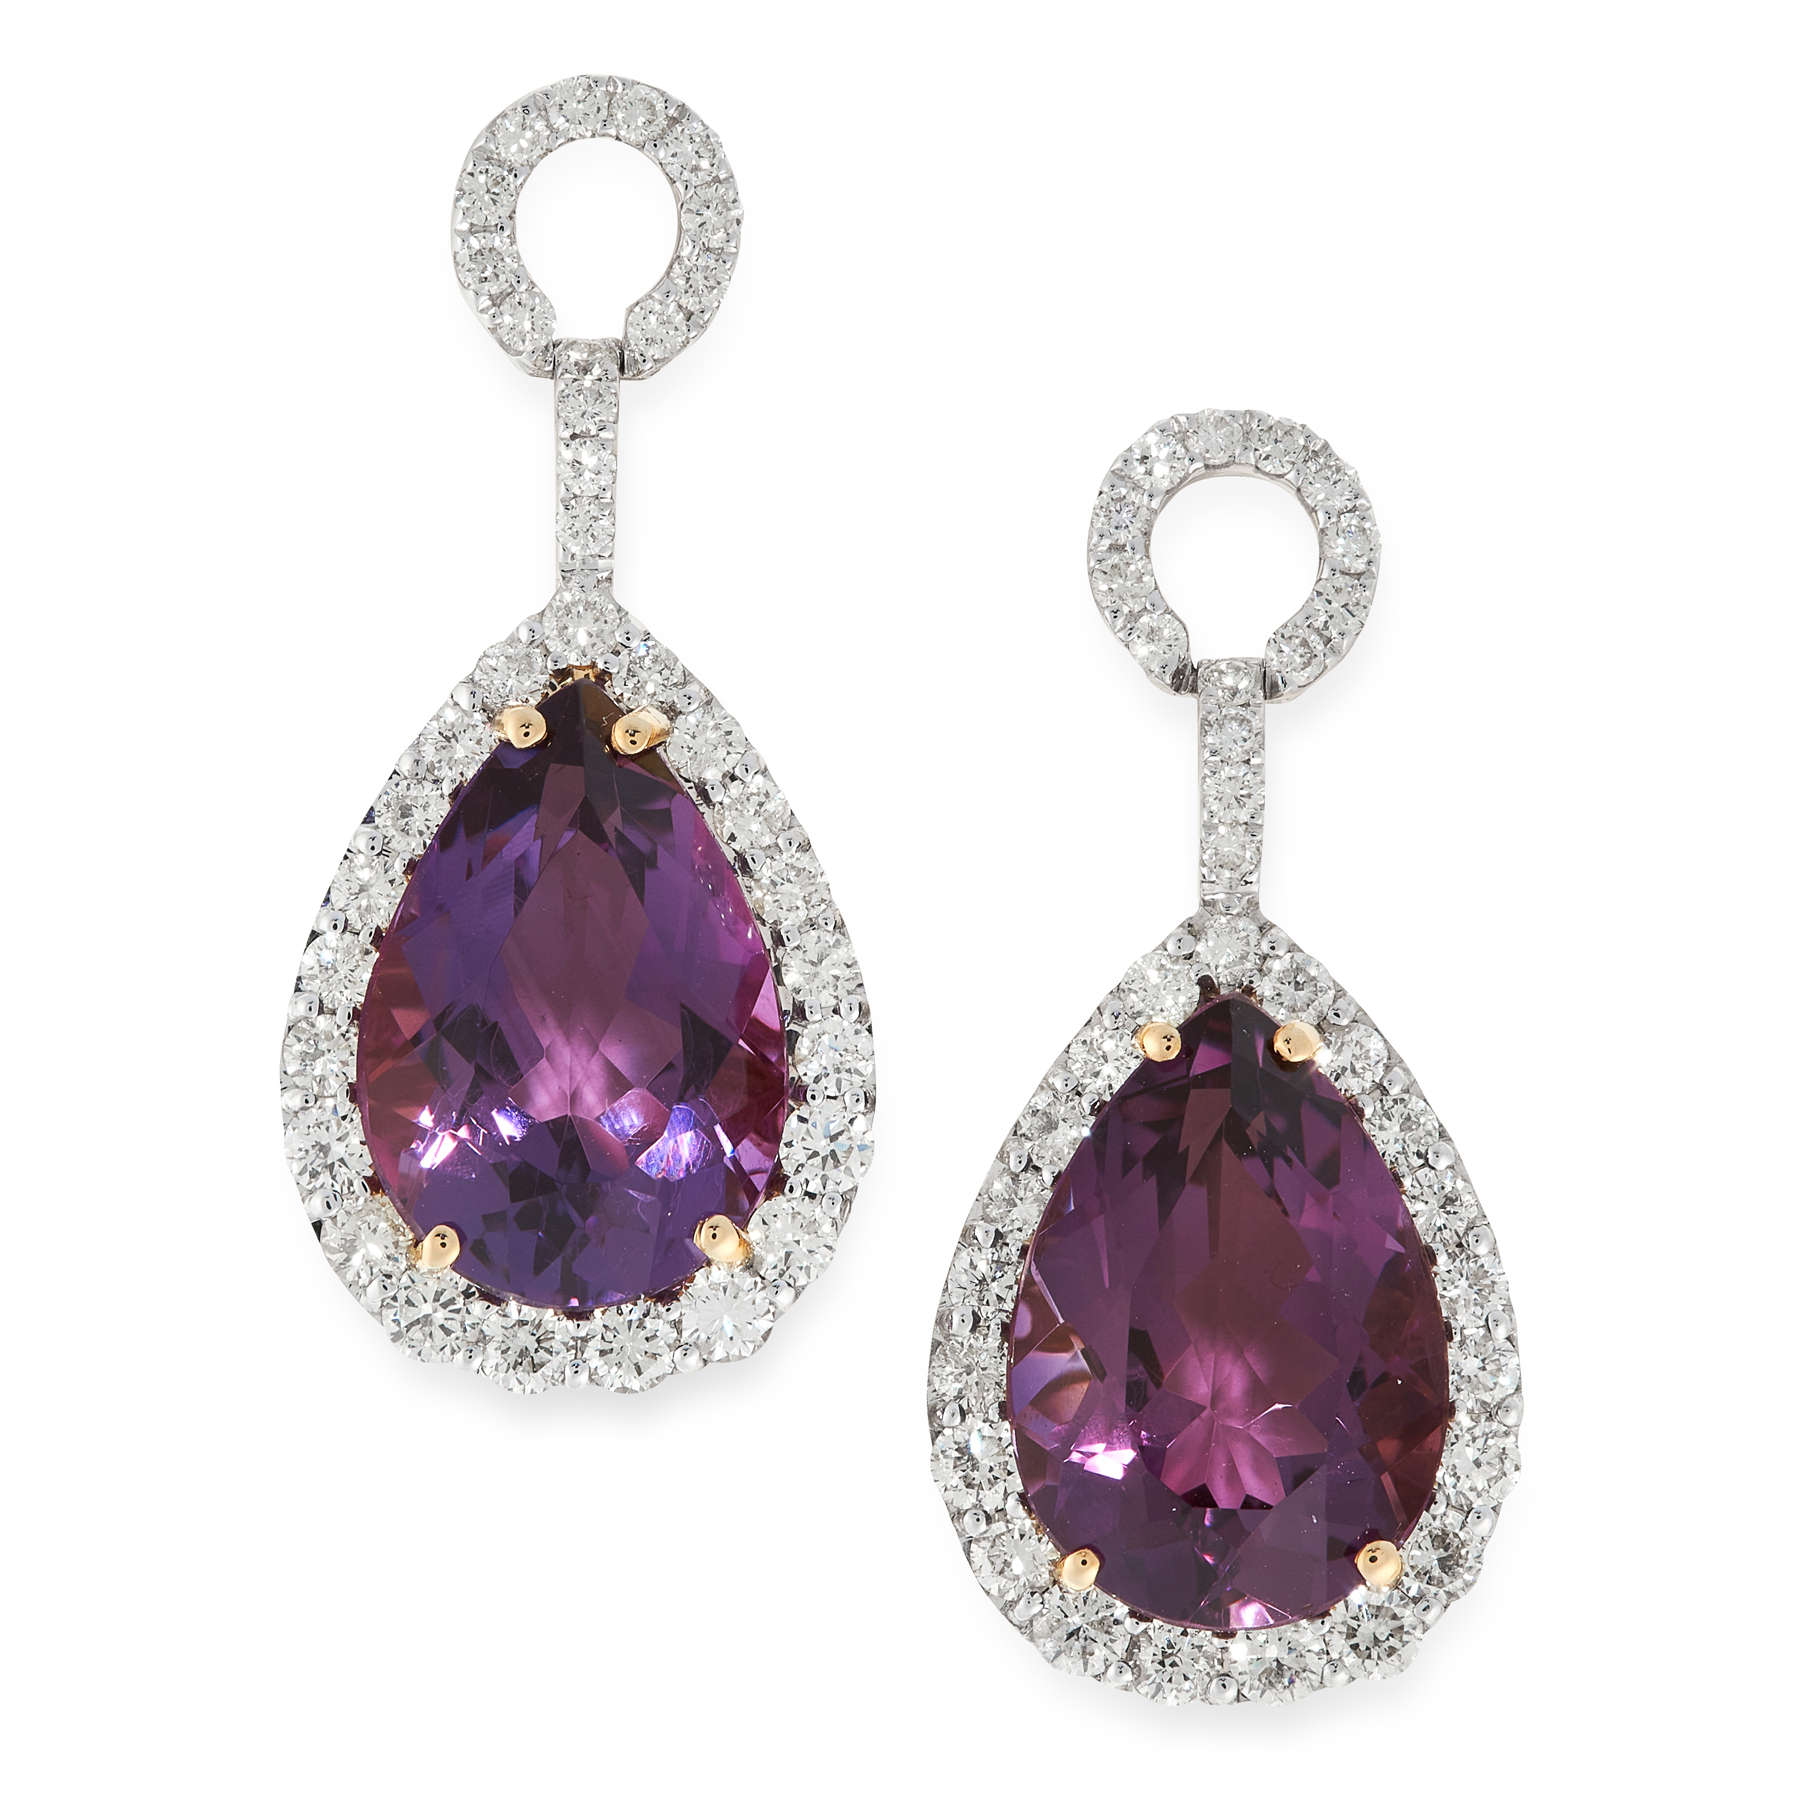 A PAIR OF AMETHYST AND DIAMOND EARRINGS in 18ct yellow gold, each set with a pear cut amethyst 8.